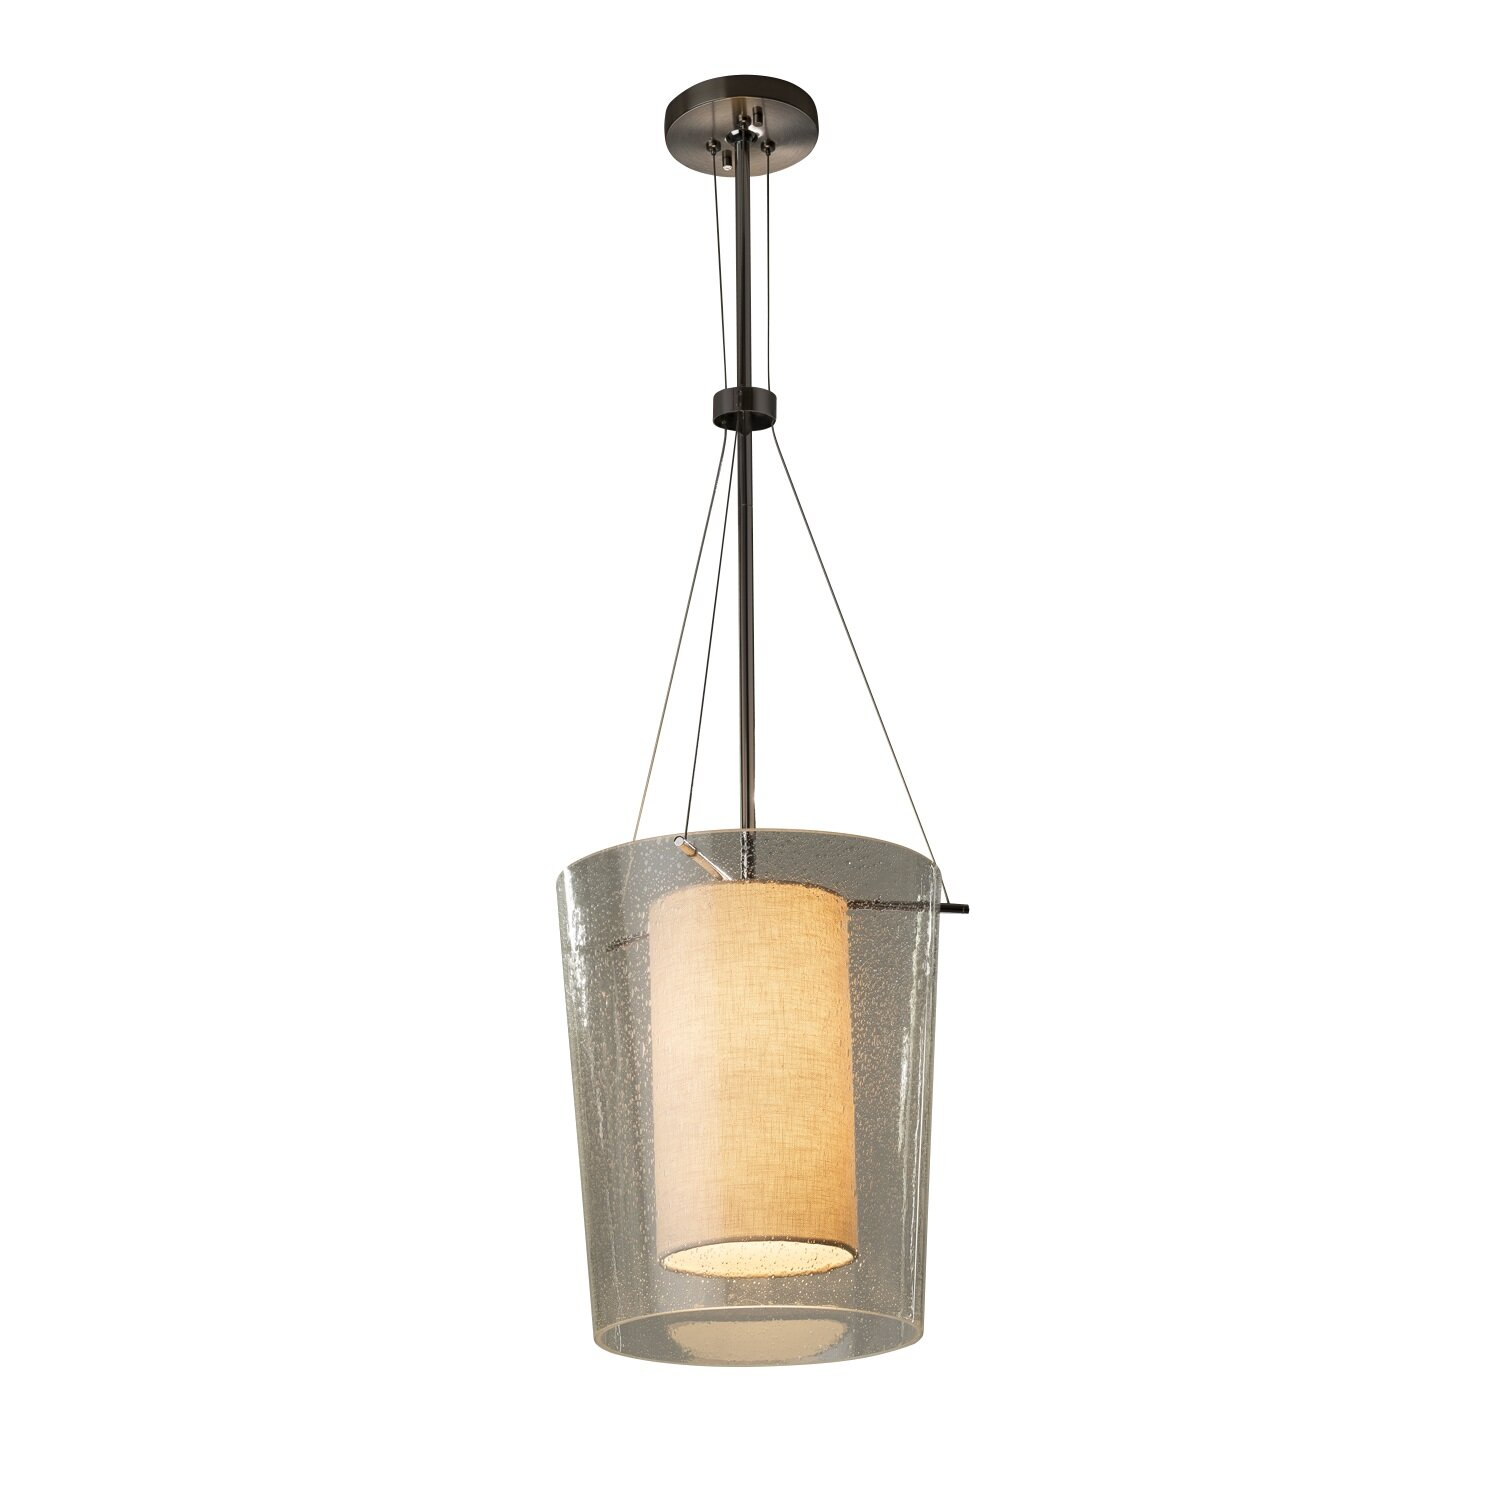 Brayden Studio Kenyon 1 Light Single Drum Pendant Wayfair